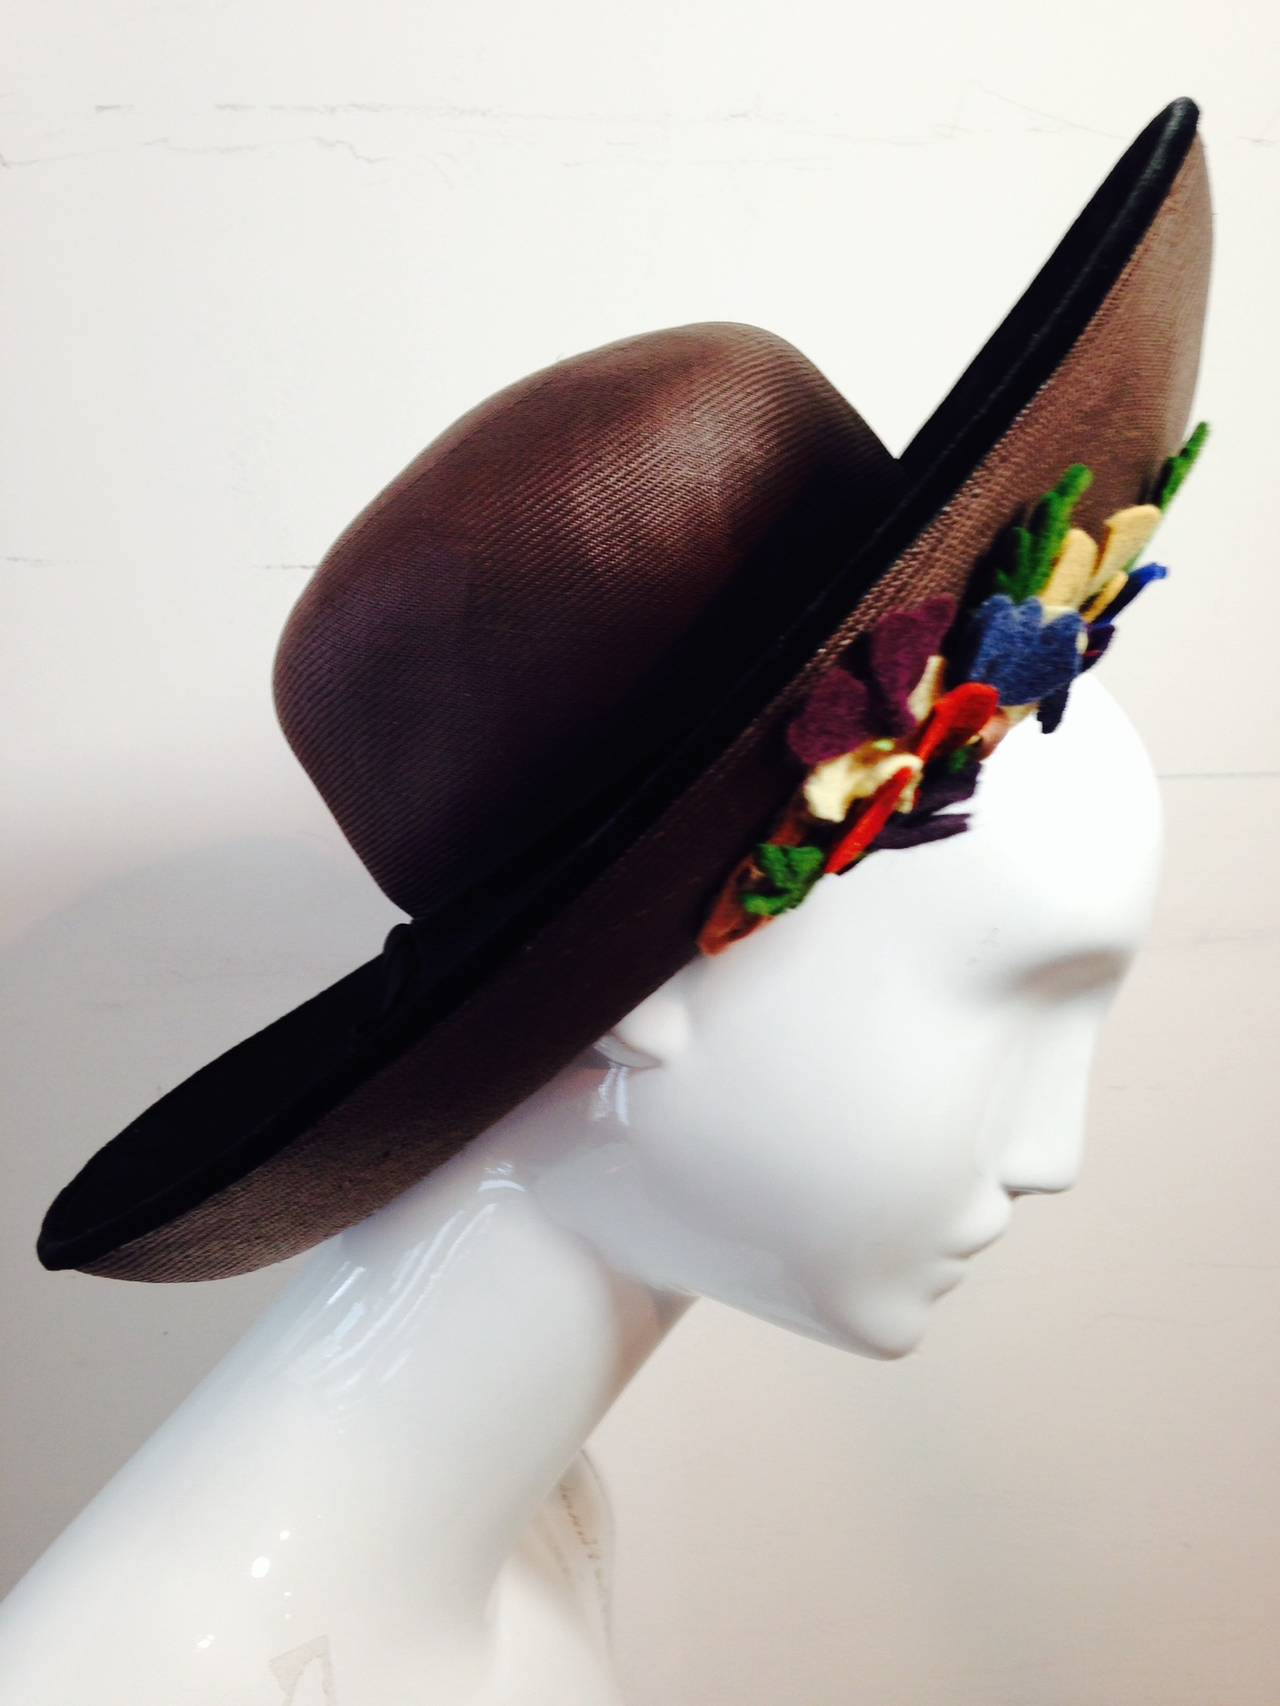 A lovely 1940s Irina Roublon brown, finely woven straw hat:  Large upturned brim is embellished underneath with detailed felt cut-out basket and bouquet details. Top side of brim is covered in black felt. Intended to be worn back on crown of head to